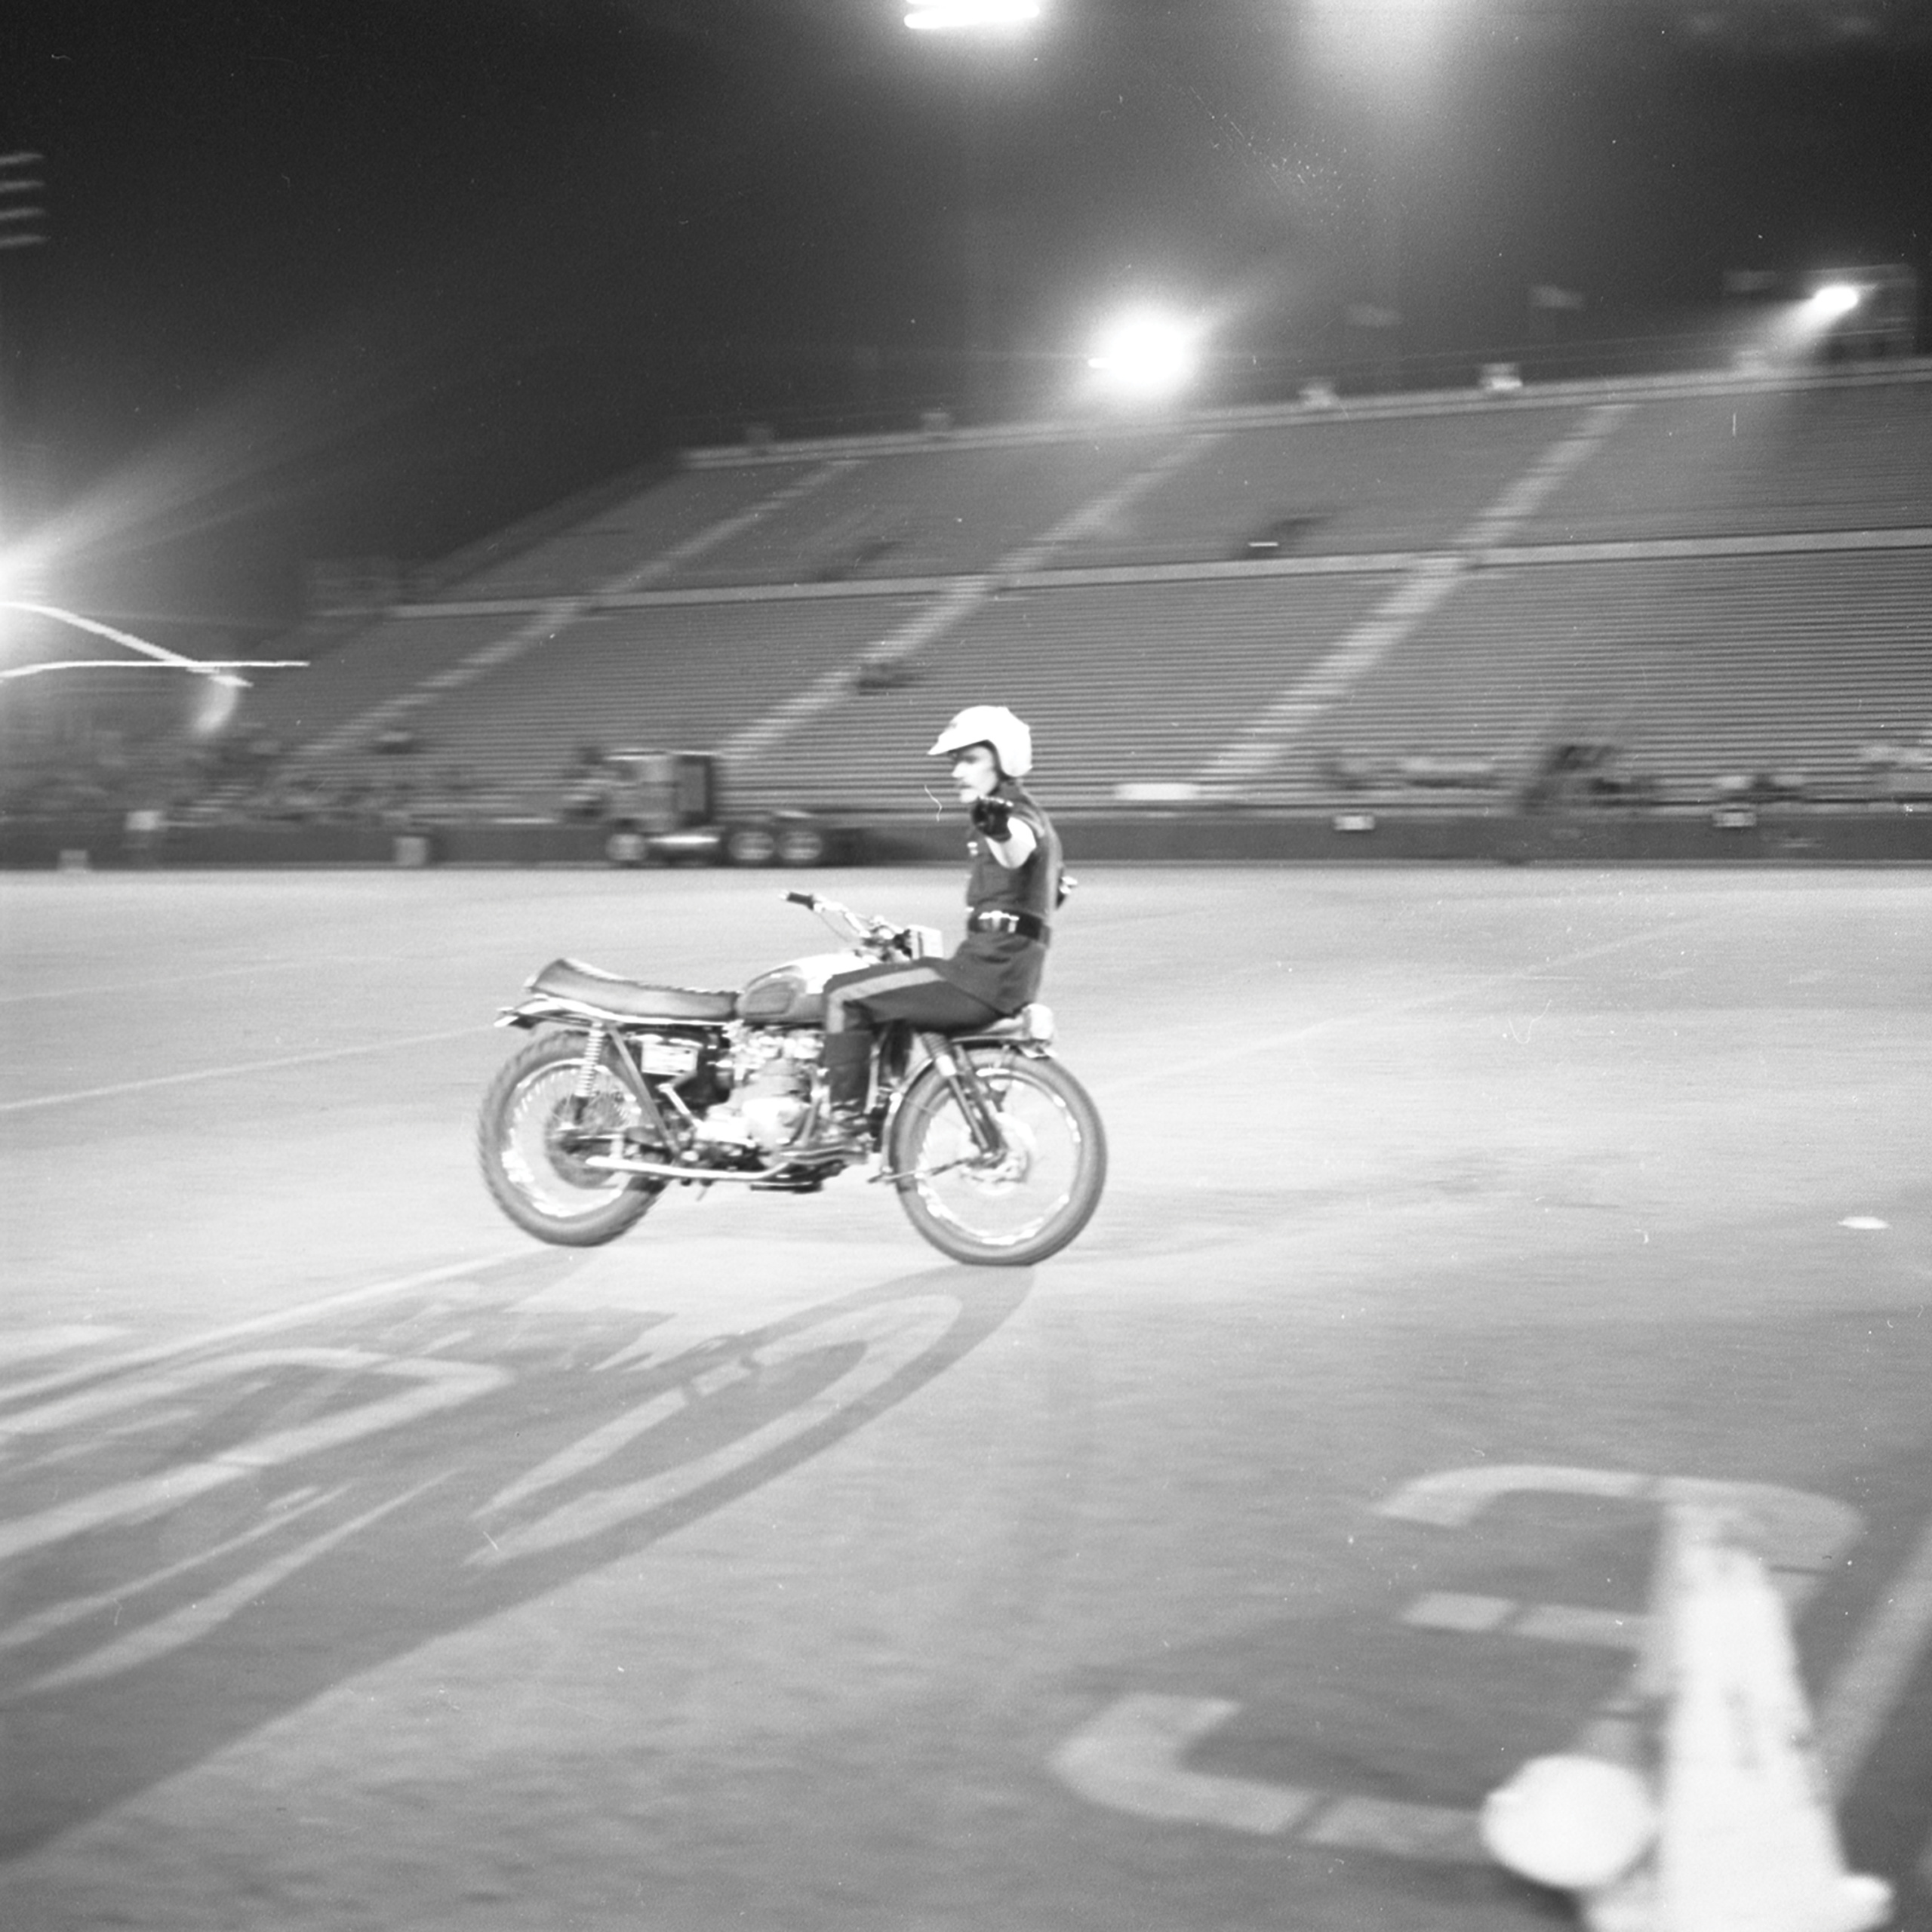 Motorcycle Rehearsal at CNE Grandstand, 1974. Canadian National Exhibition Archives, MG5-F3570-I2. Courtesy of the CNEA